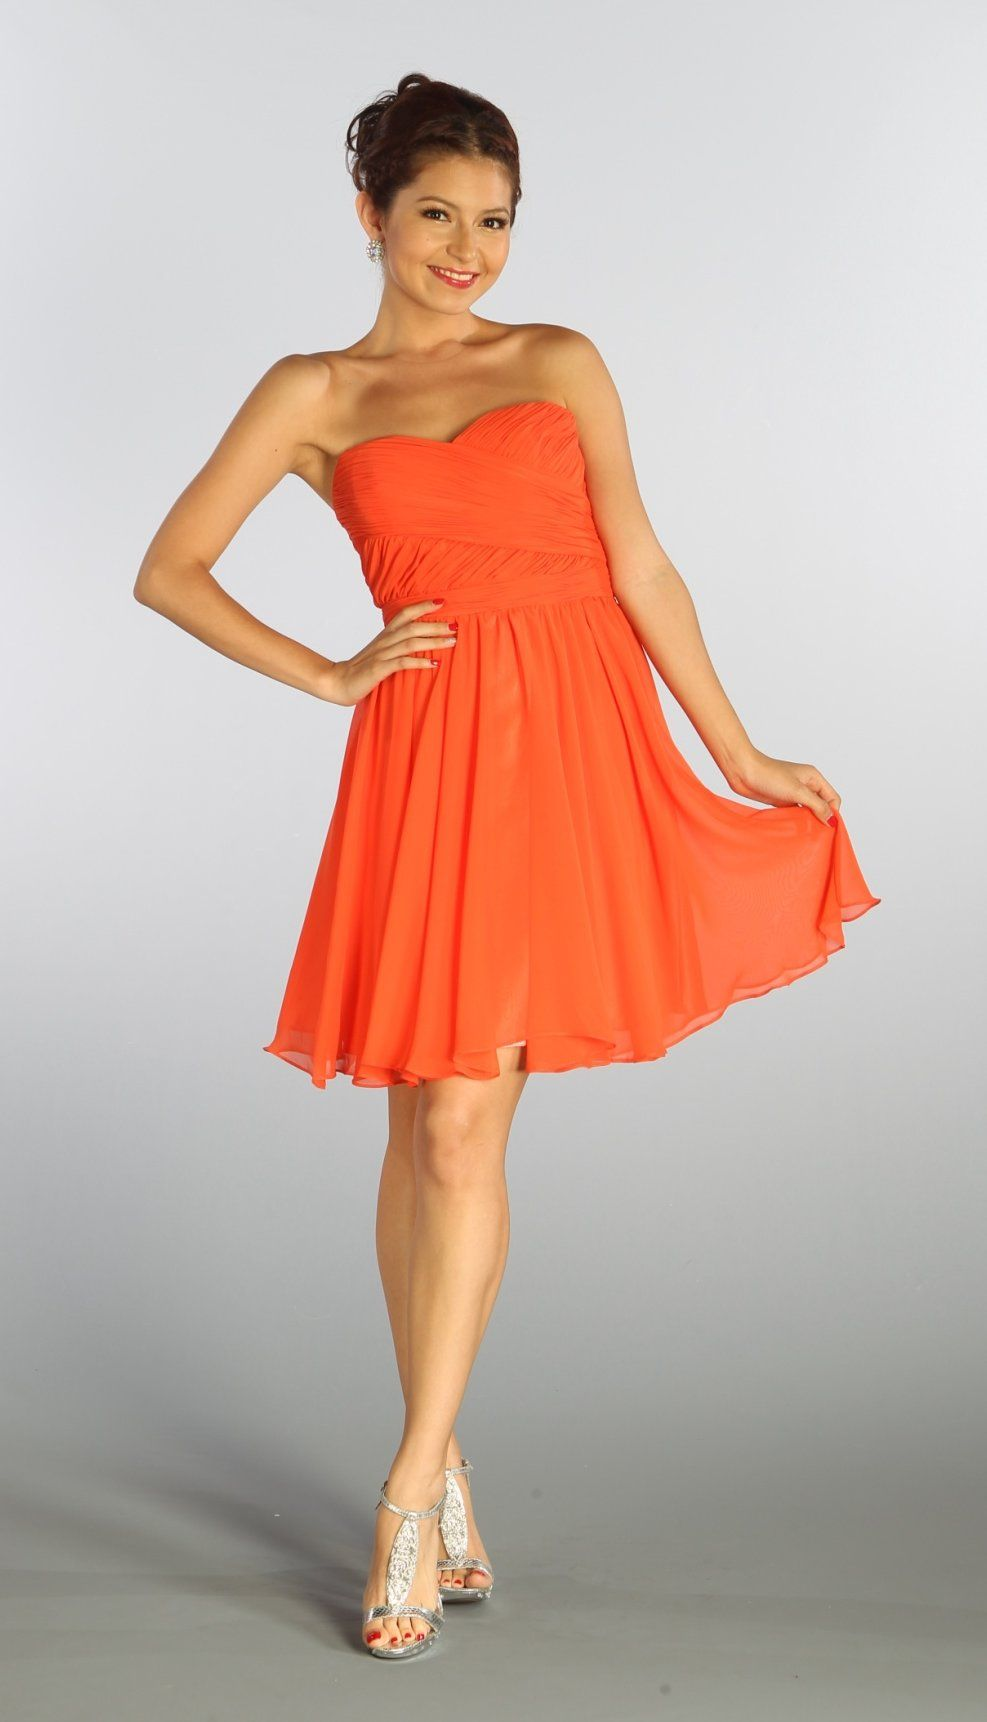 Strapless Chiffon Short Orange Bridesmaid Dress Knee Length